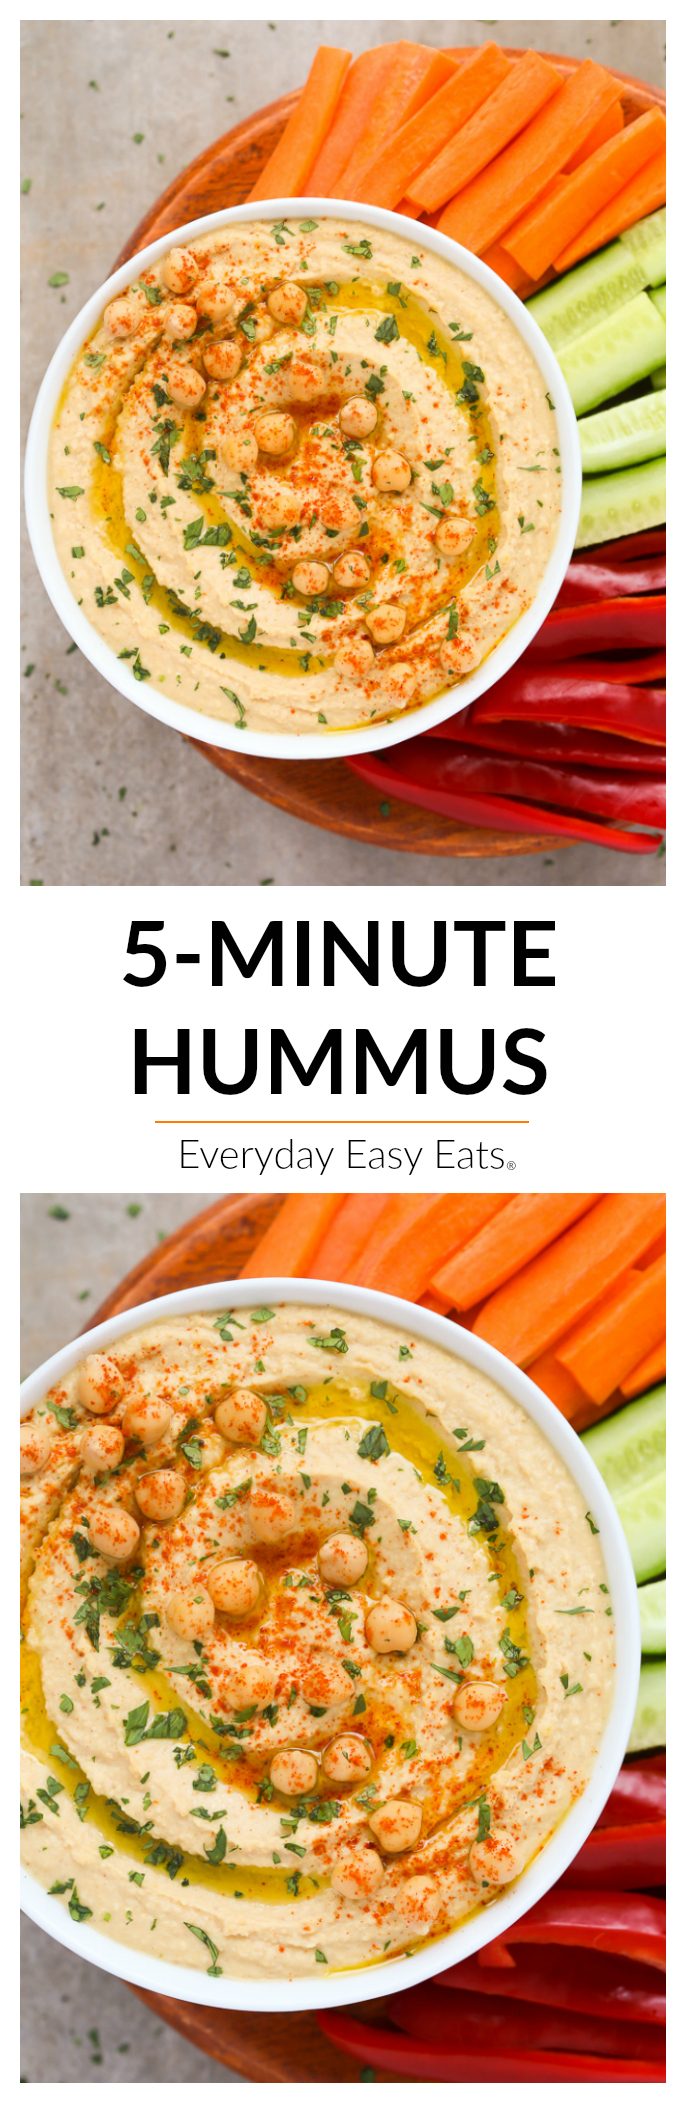 This Classic Hummus recipe is so simple to make and is much tastier than anything you can buy from the store. Vegan, gluten-free and ready to eat in just 5 minutes! | EverydayEasyEats.com